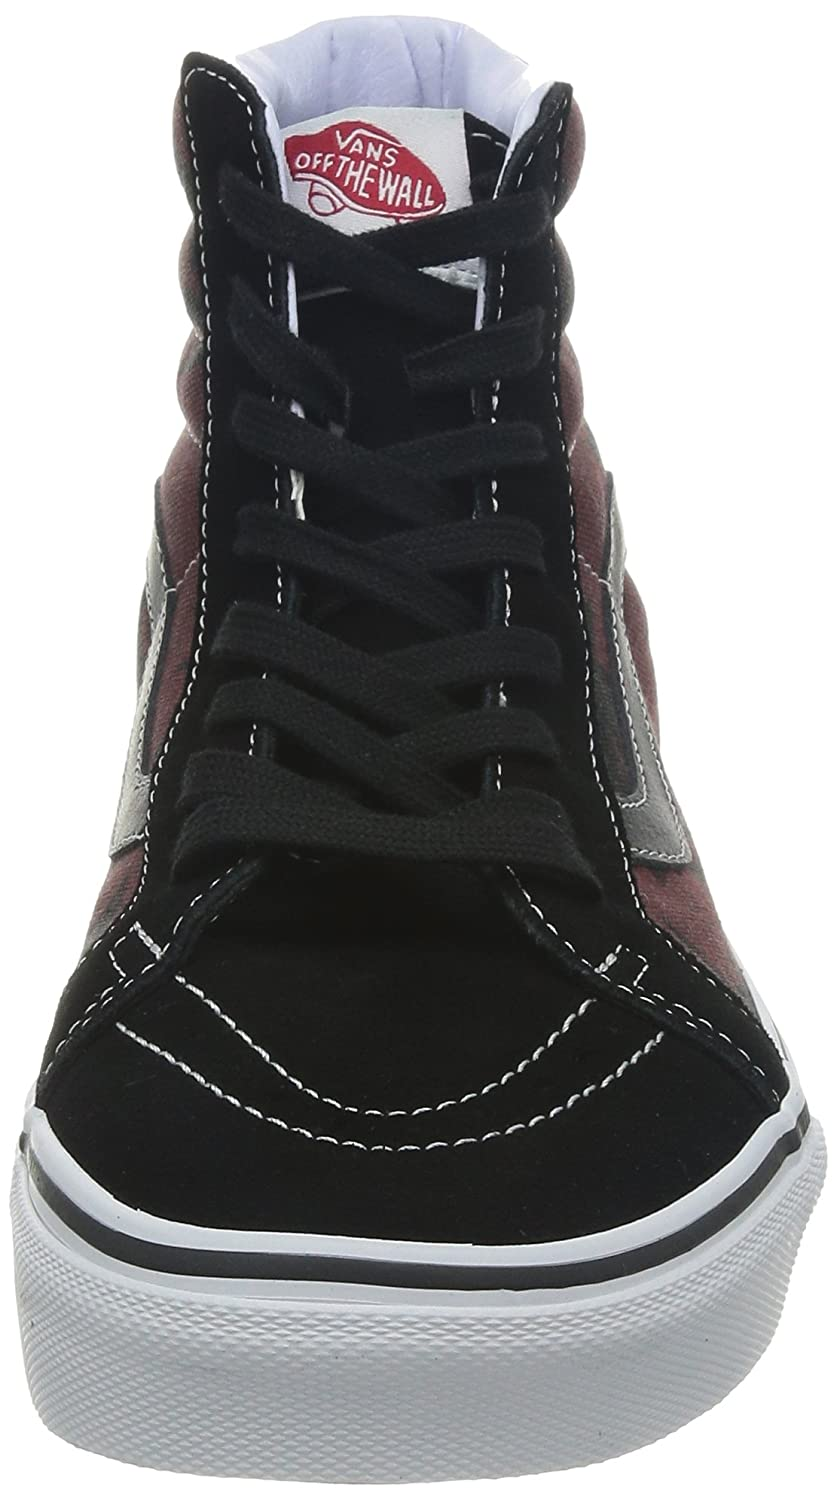 e369a480be3 VANS - Sneakers - Men - Sk8 Hi Van Doren Black Palm Tree Motif for men   Amazon.co.uk  Shoes   Bags